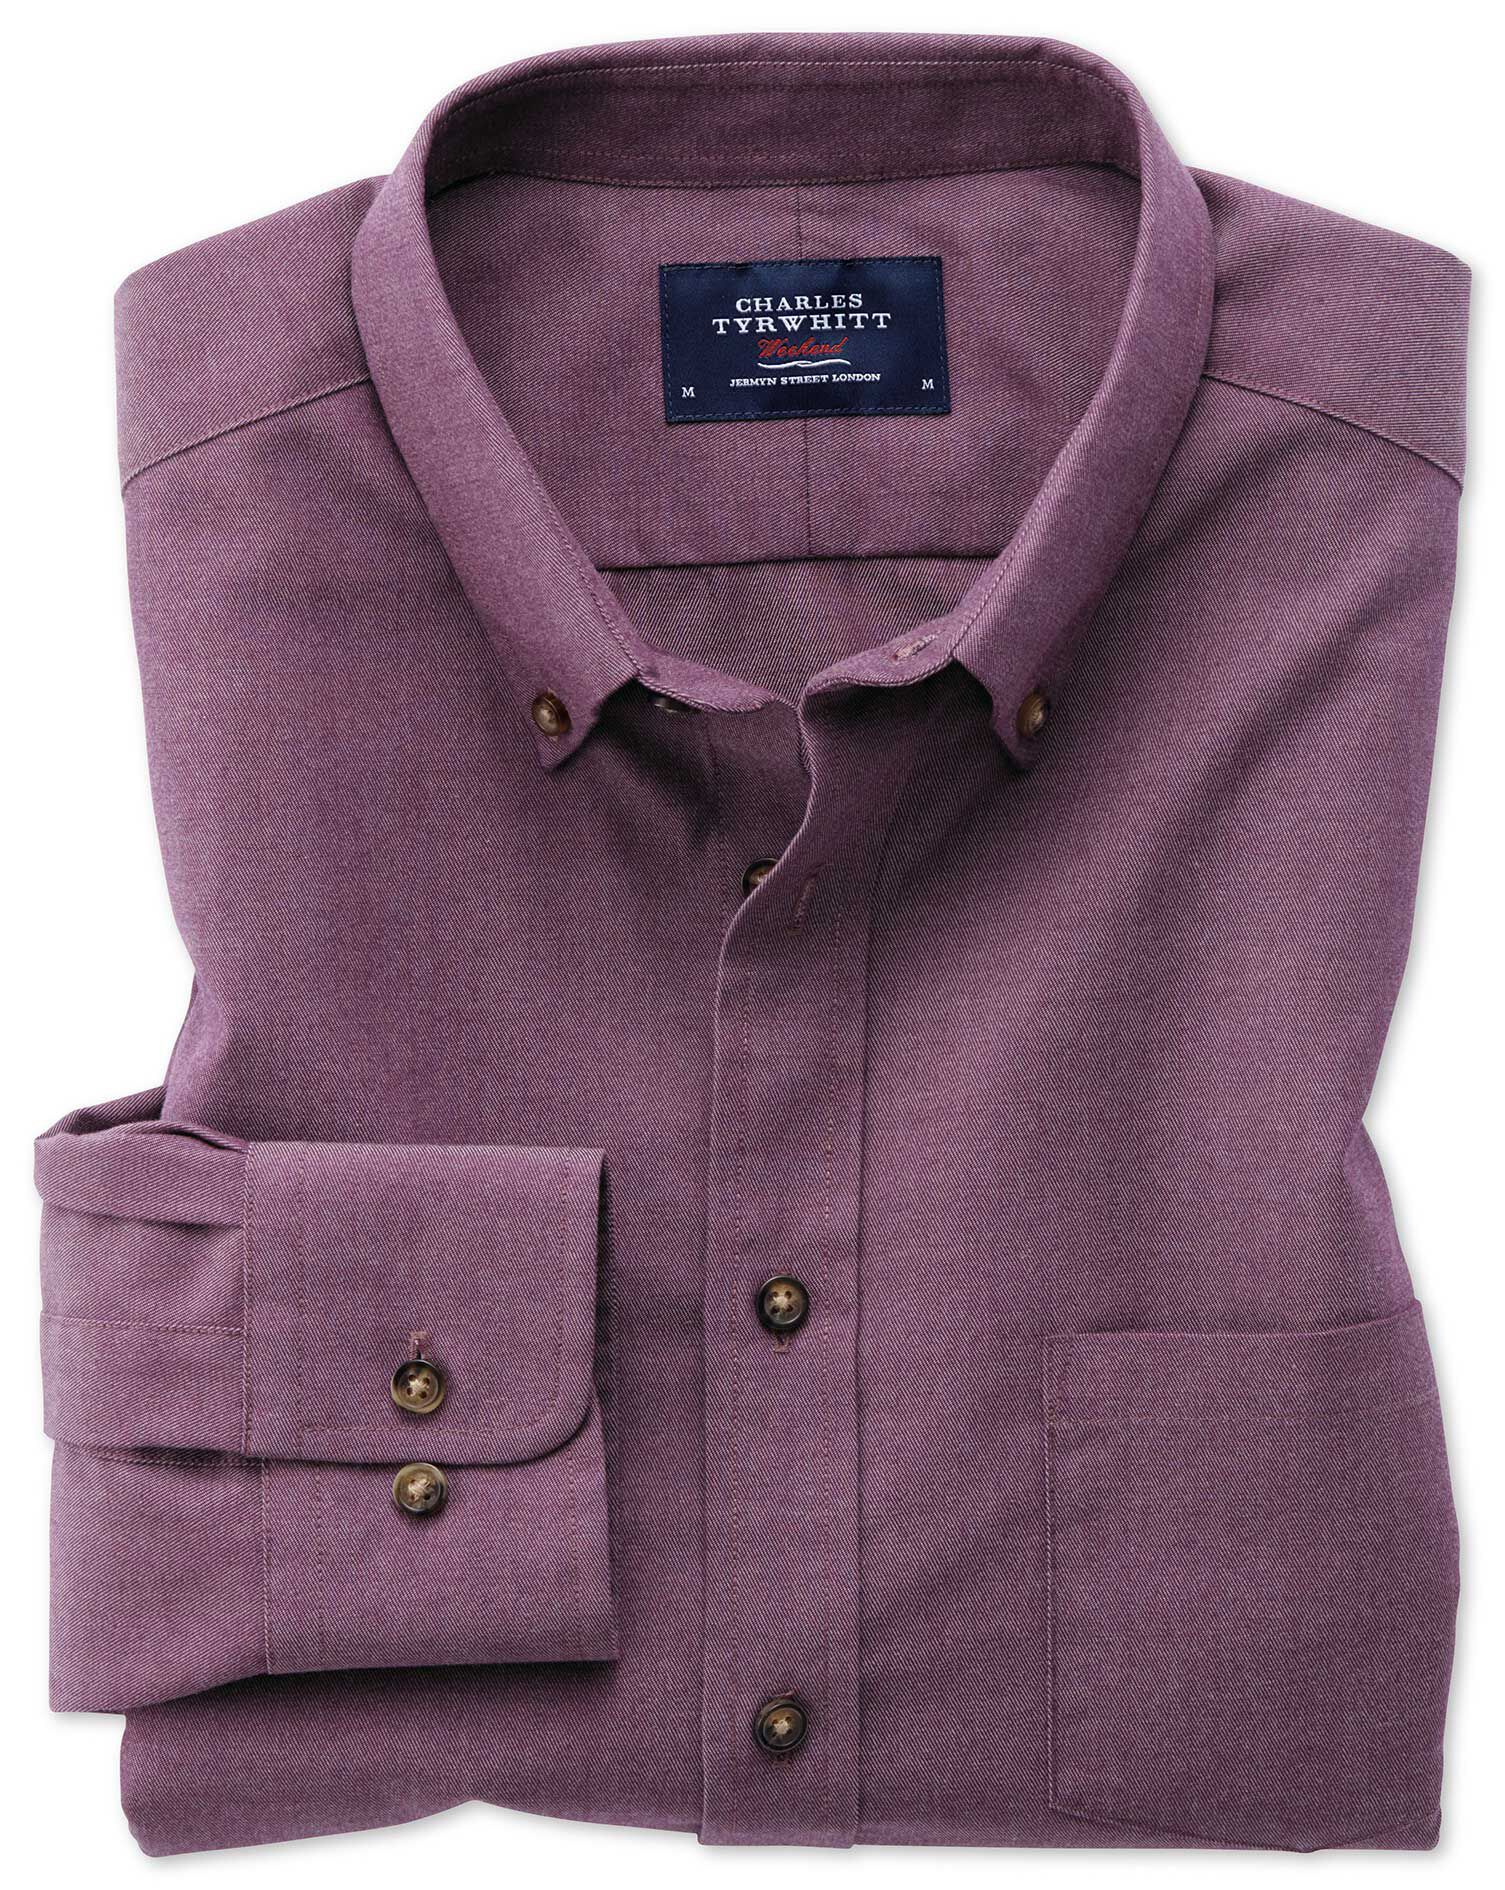 Classic Fit Button-Down Non-Iron Twill Purple Cotton Shirt Single Cuff Size XL by Charles Tyrwhitt